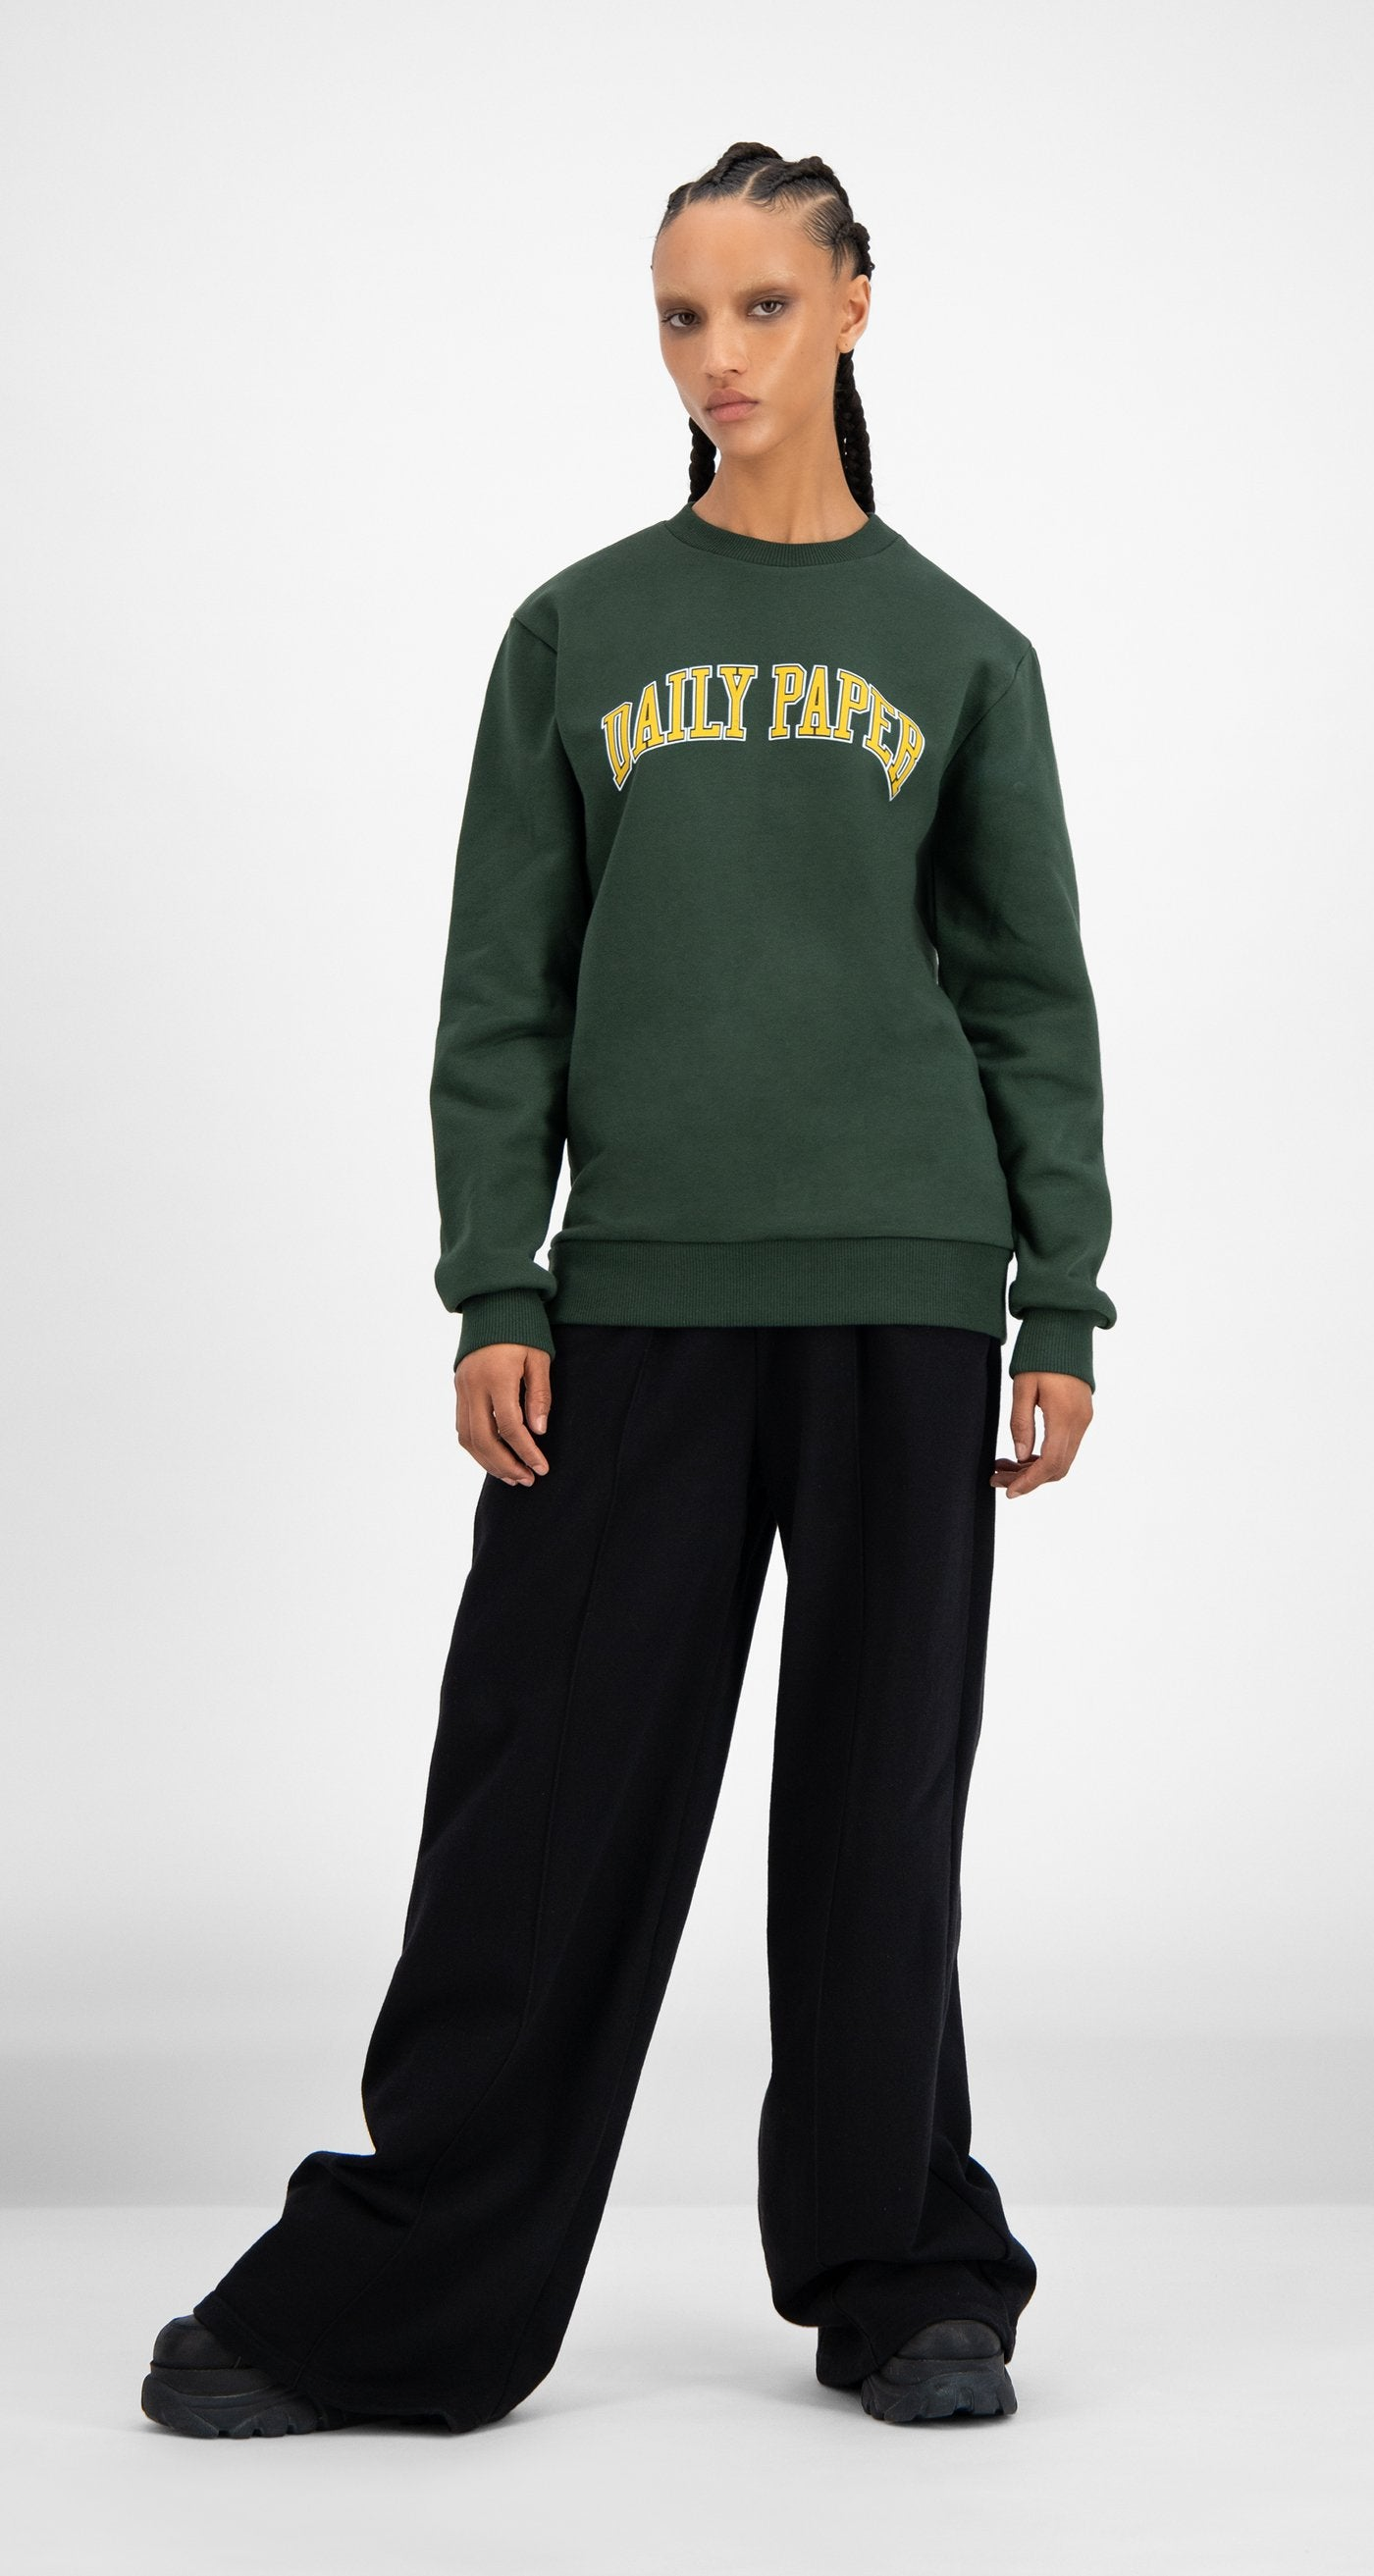 Daily Paper - SOH Mountain View Sweater - Women